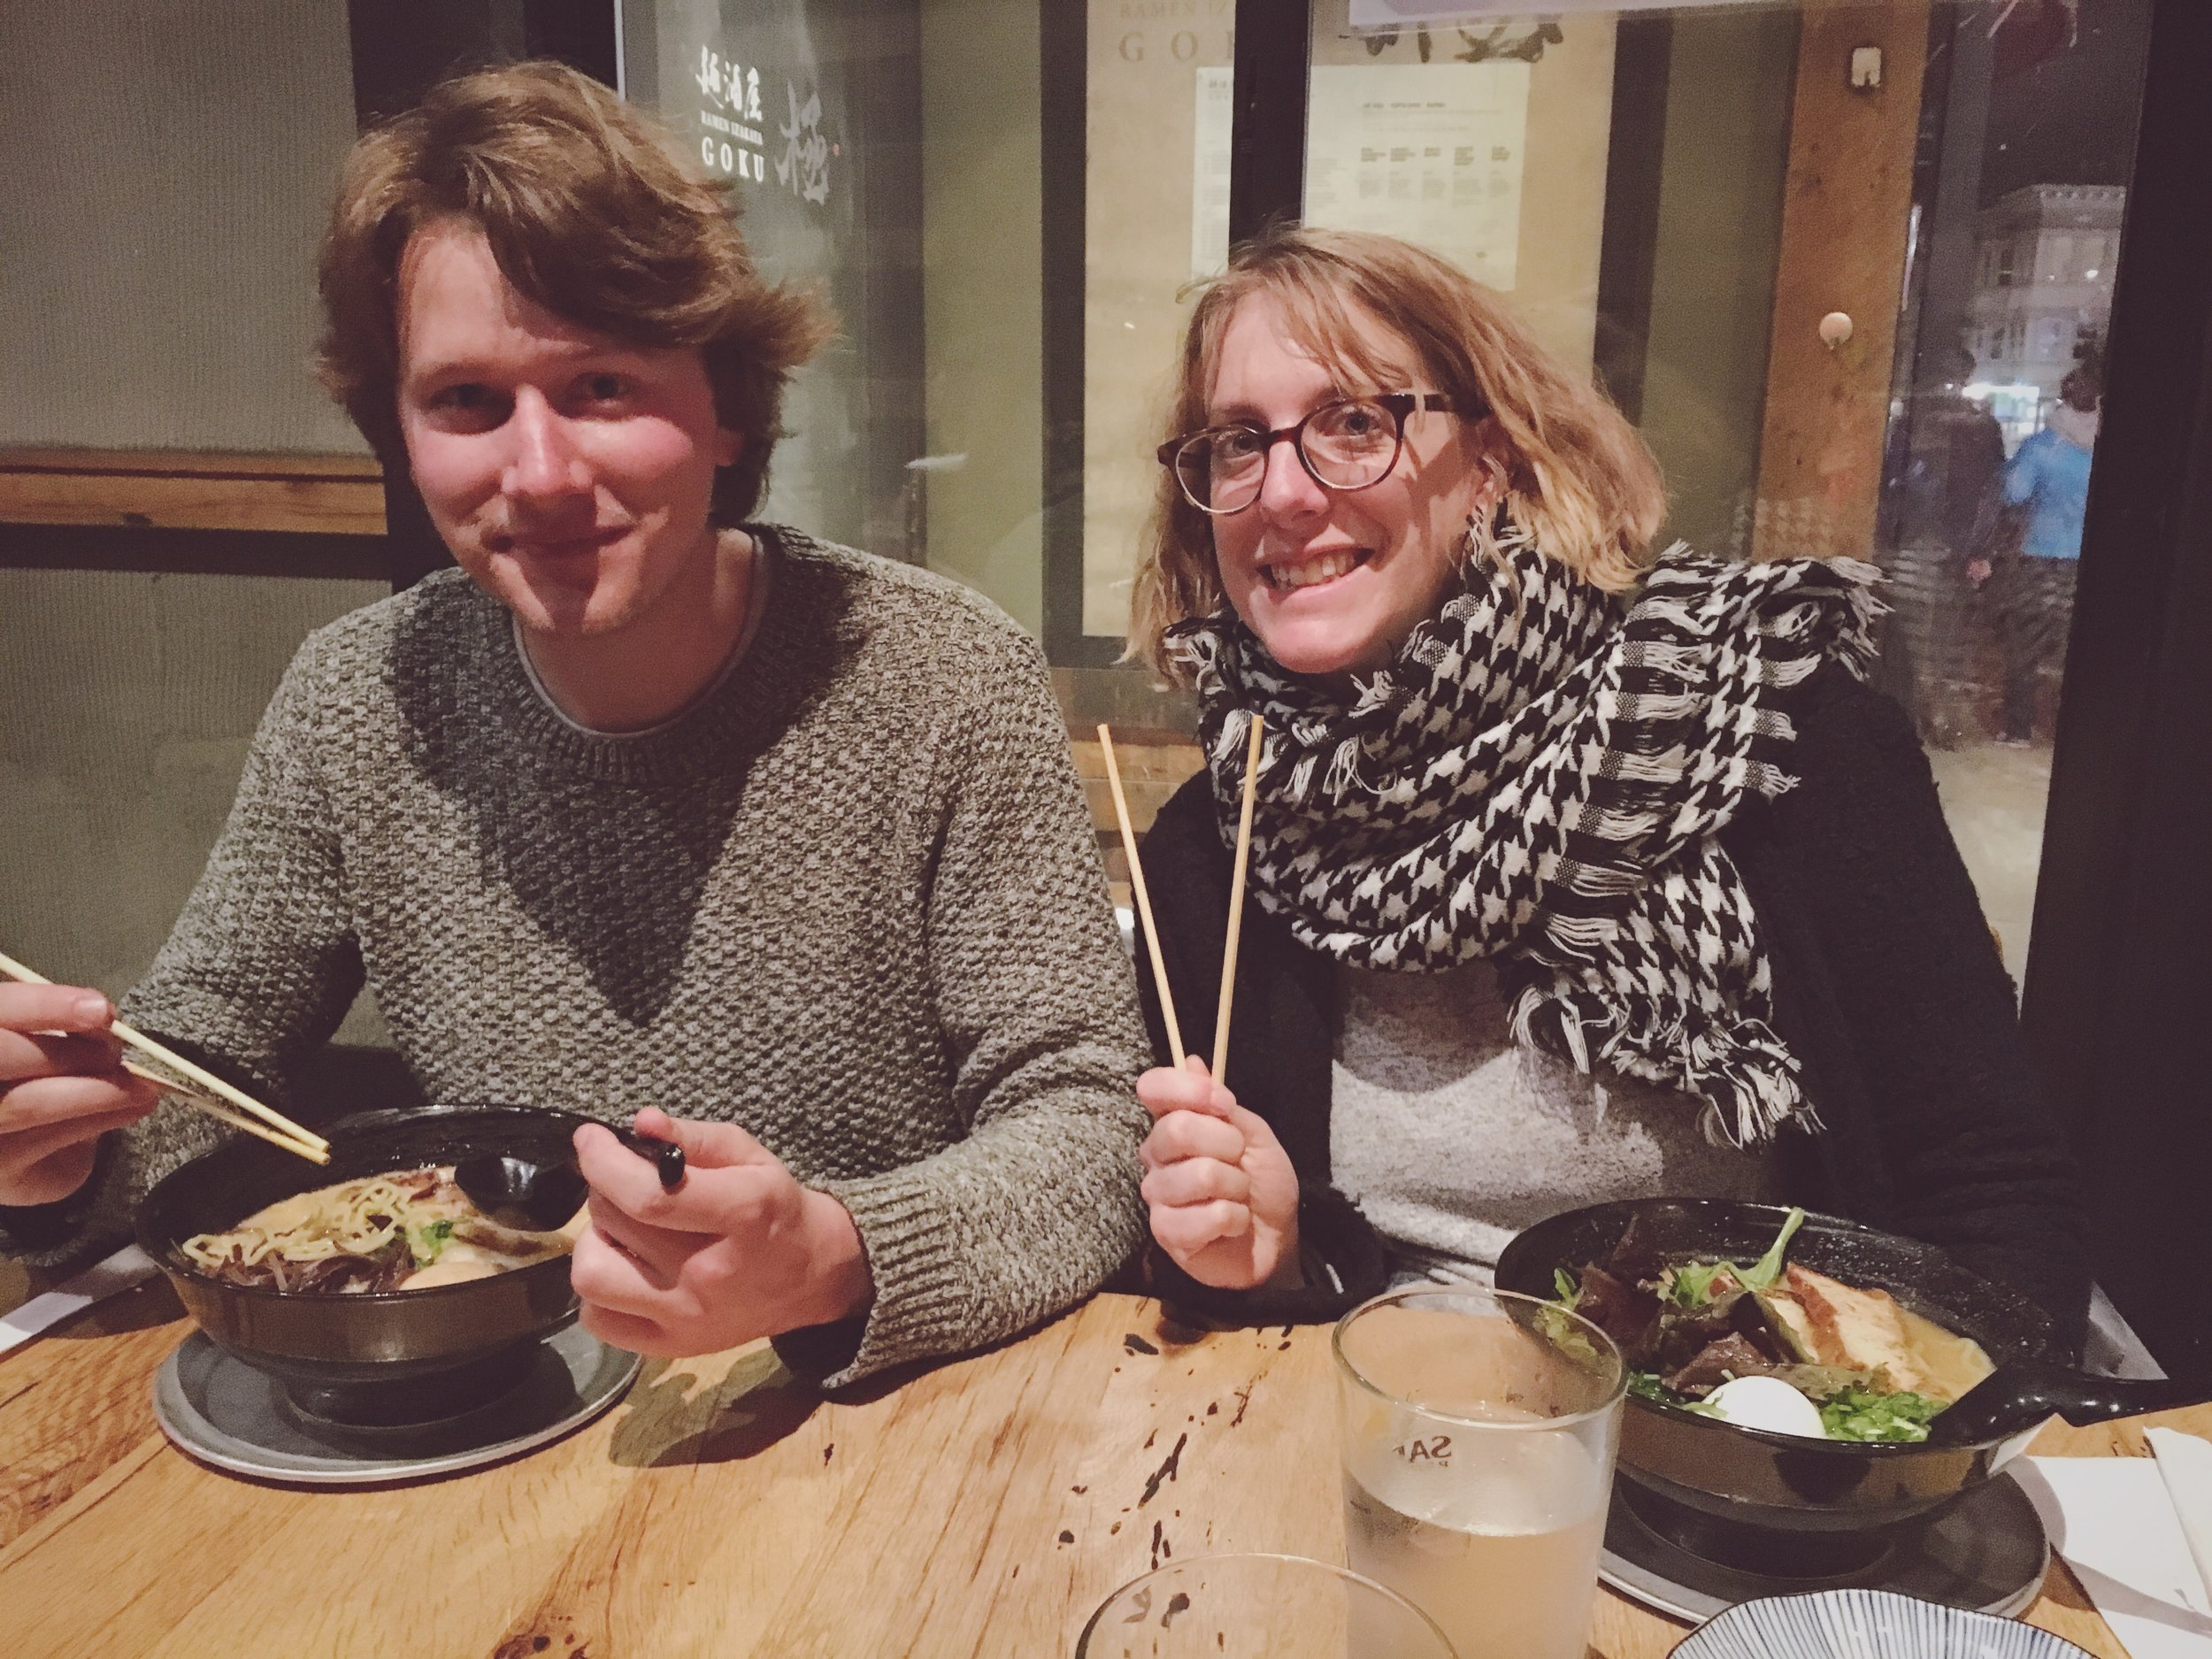 Friends from Munich who are all about that ramen on a cold, wet day in San Francisco.